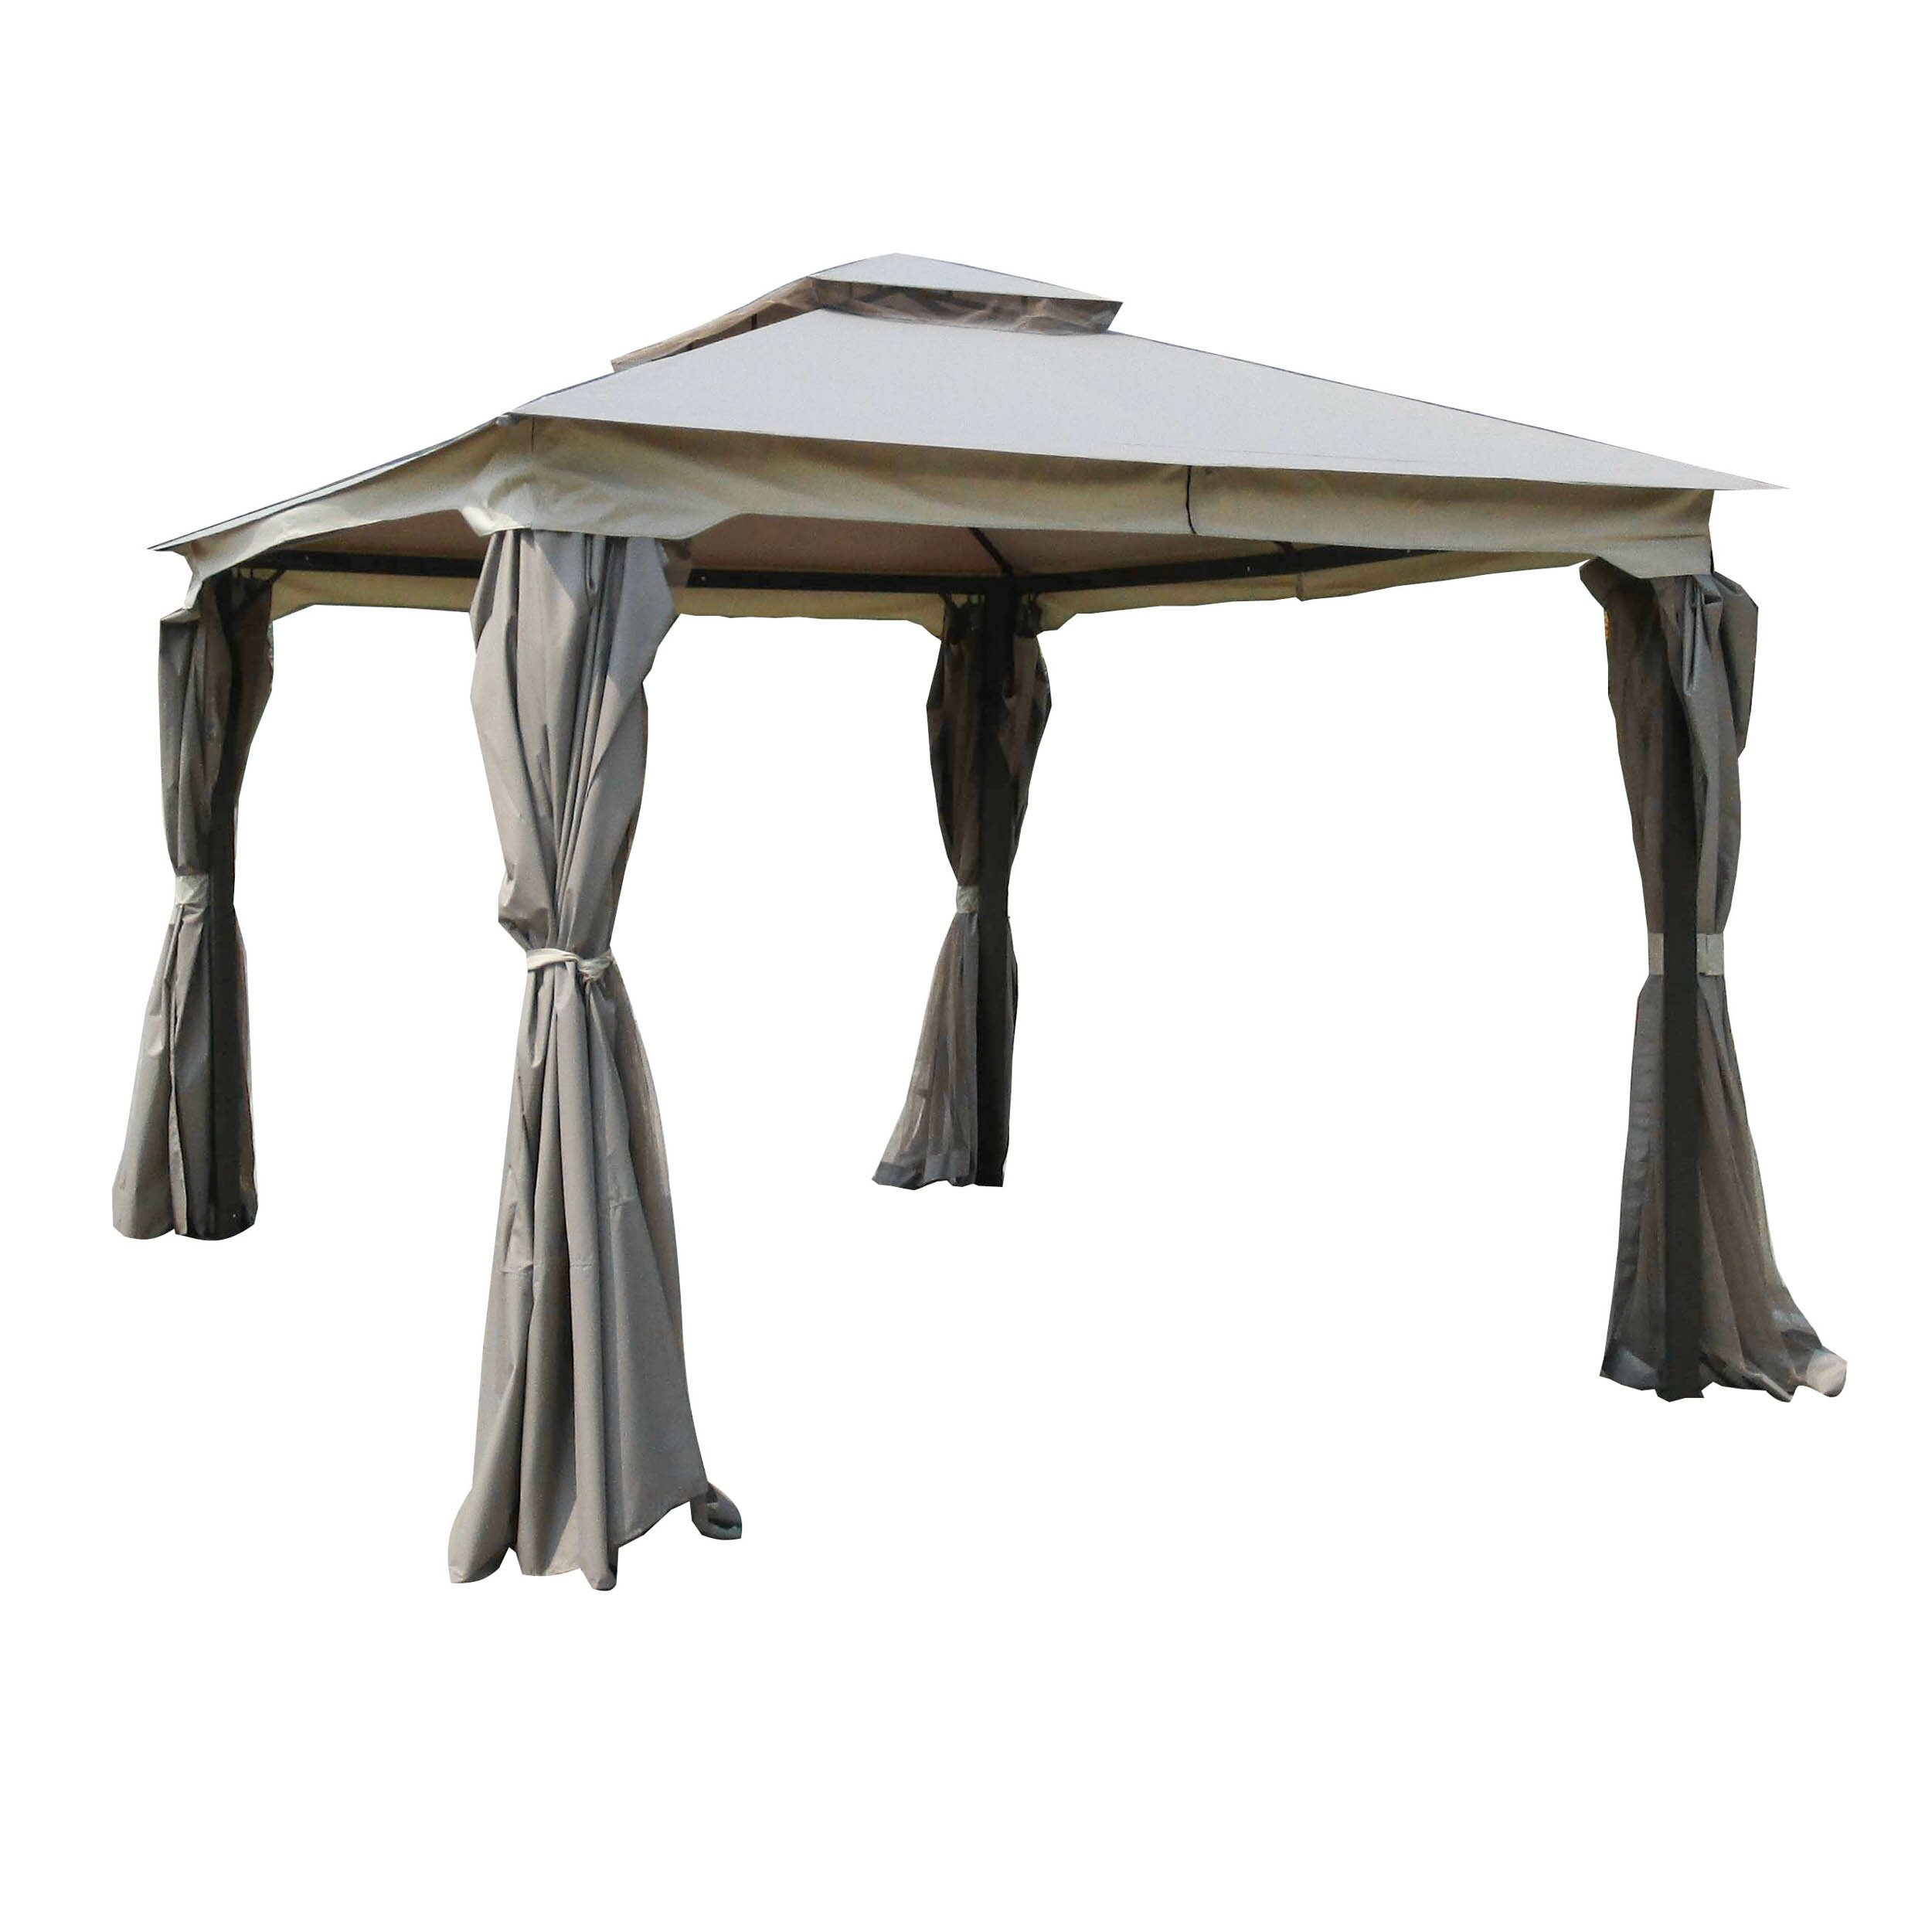 Home Loft Concepts Aguilar 10 Ft W X 12 Ft D Gazebo